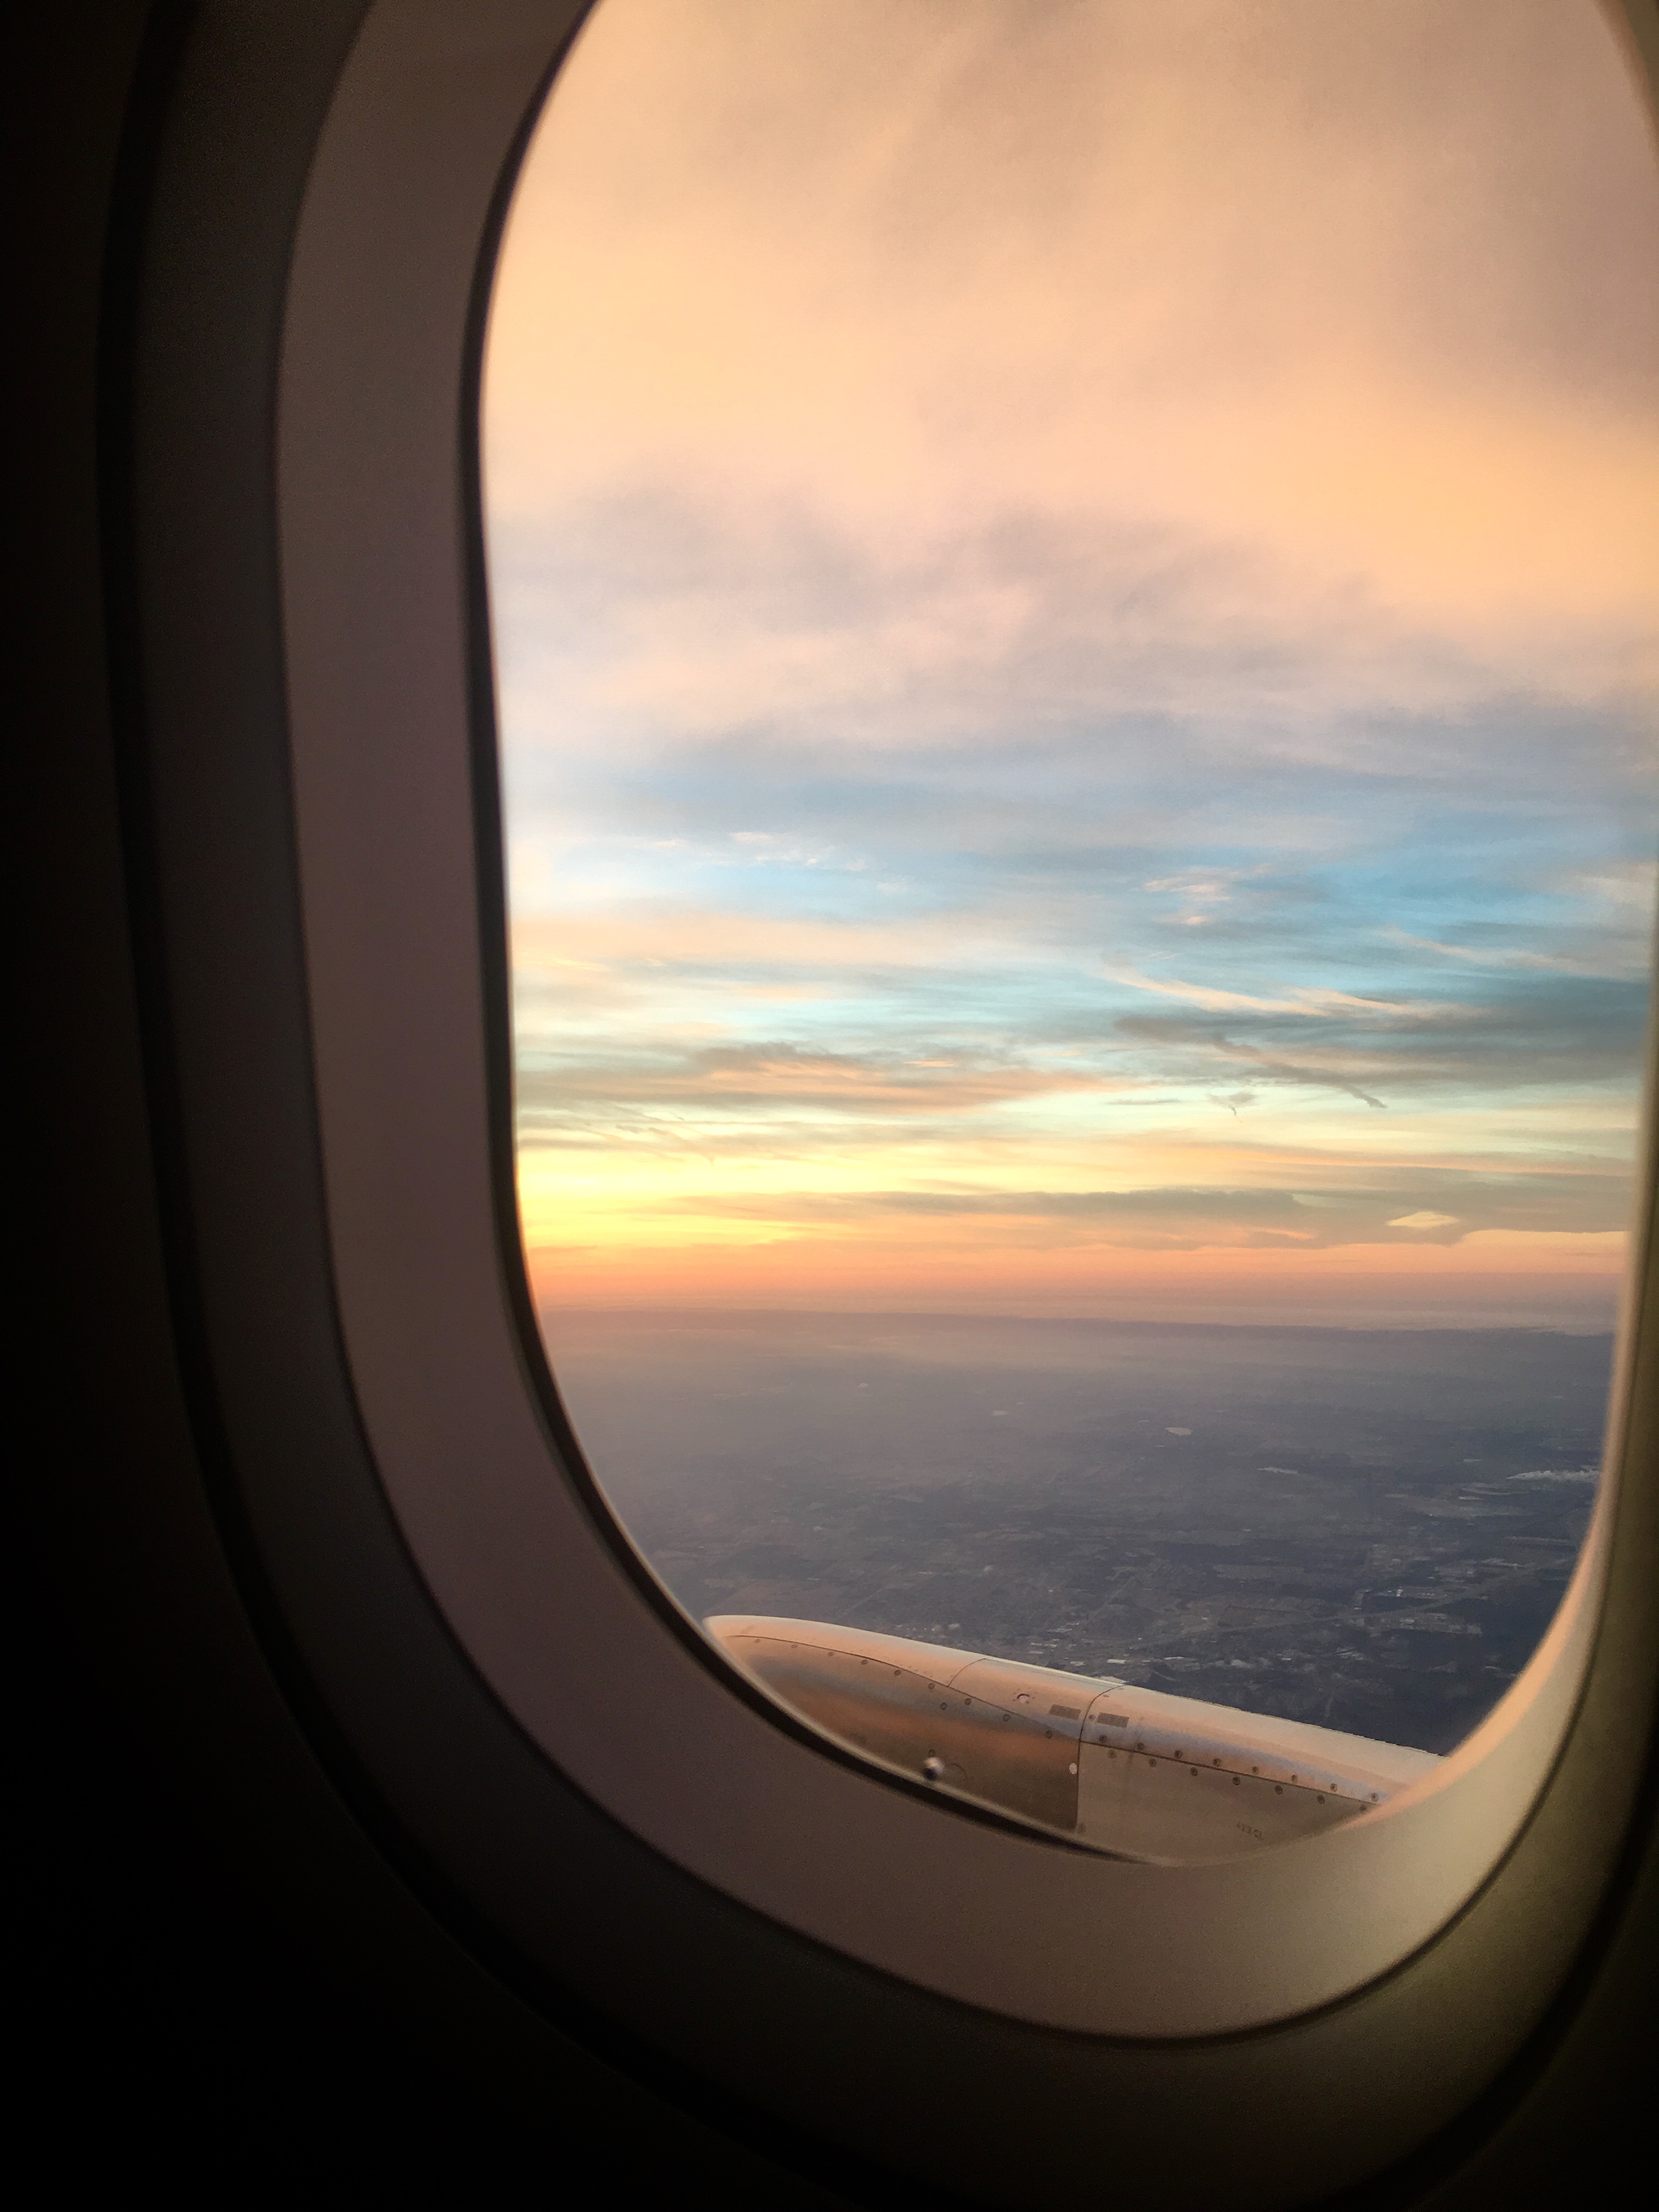 Phenomenal Airplane Window Seat Mary Chryston Mary Chryston Gmtry Best Dining Table And Chair Ideas Images Gmtryco